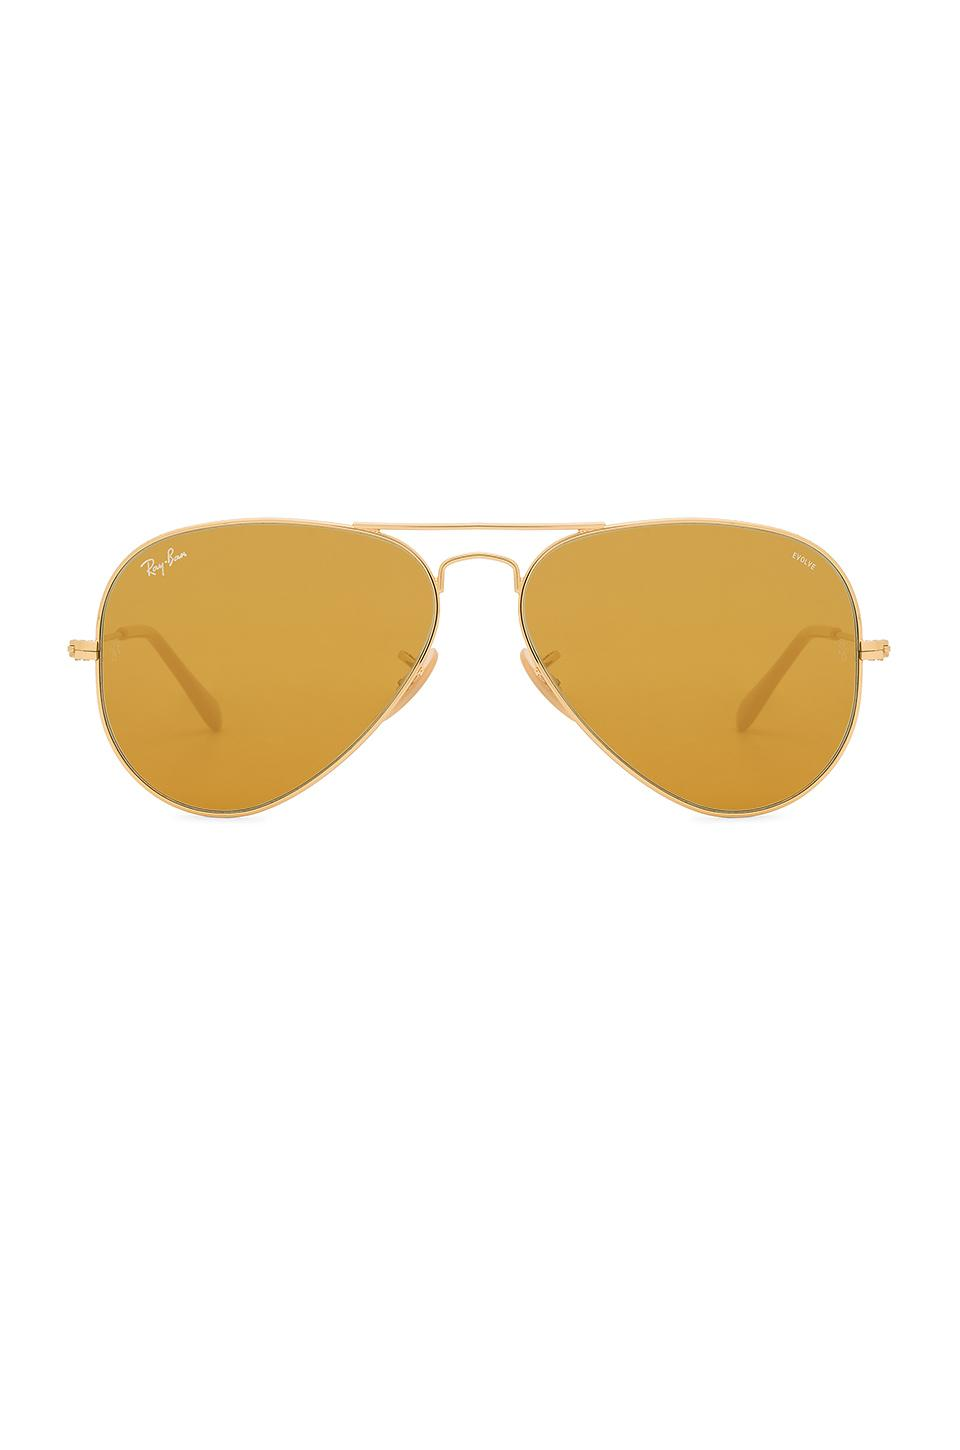 Ray Ban Aviator Evolve In Metallic Gold